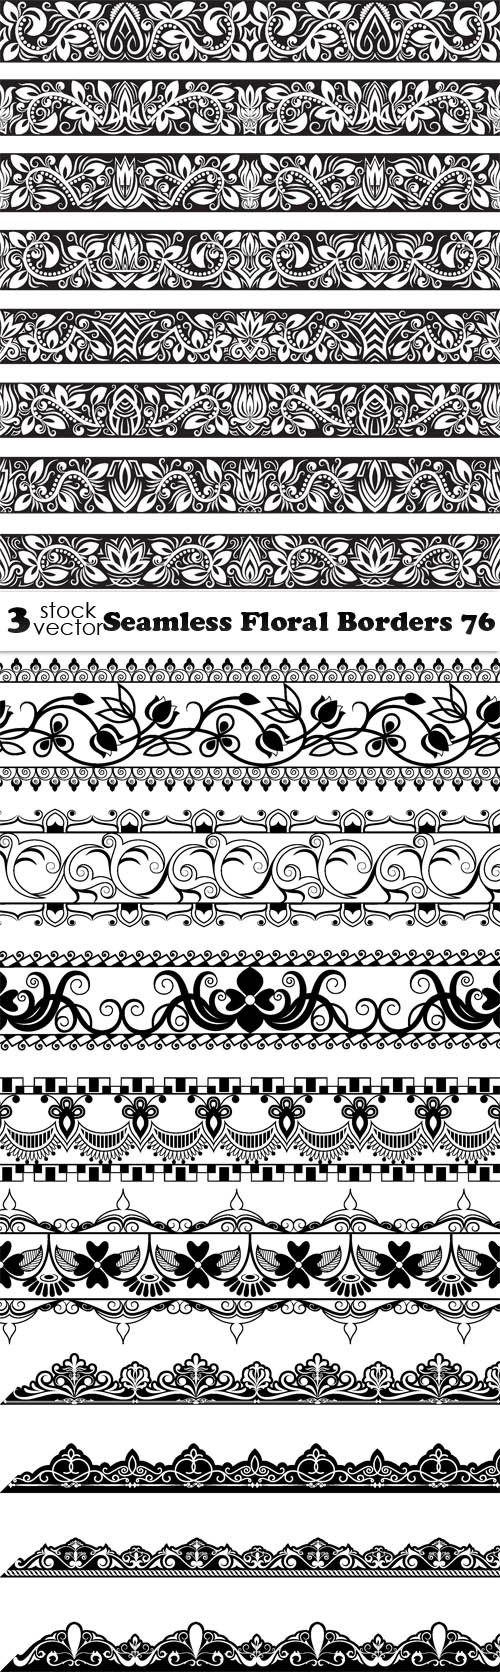 Vectors - Seamless Floral Borders 76